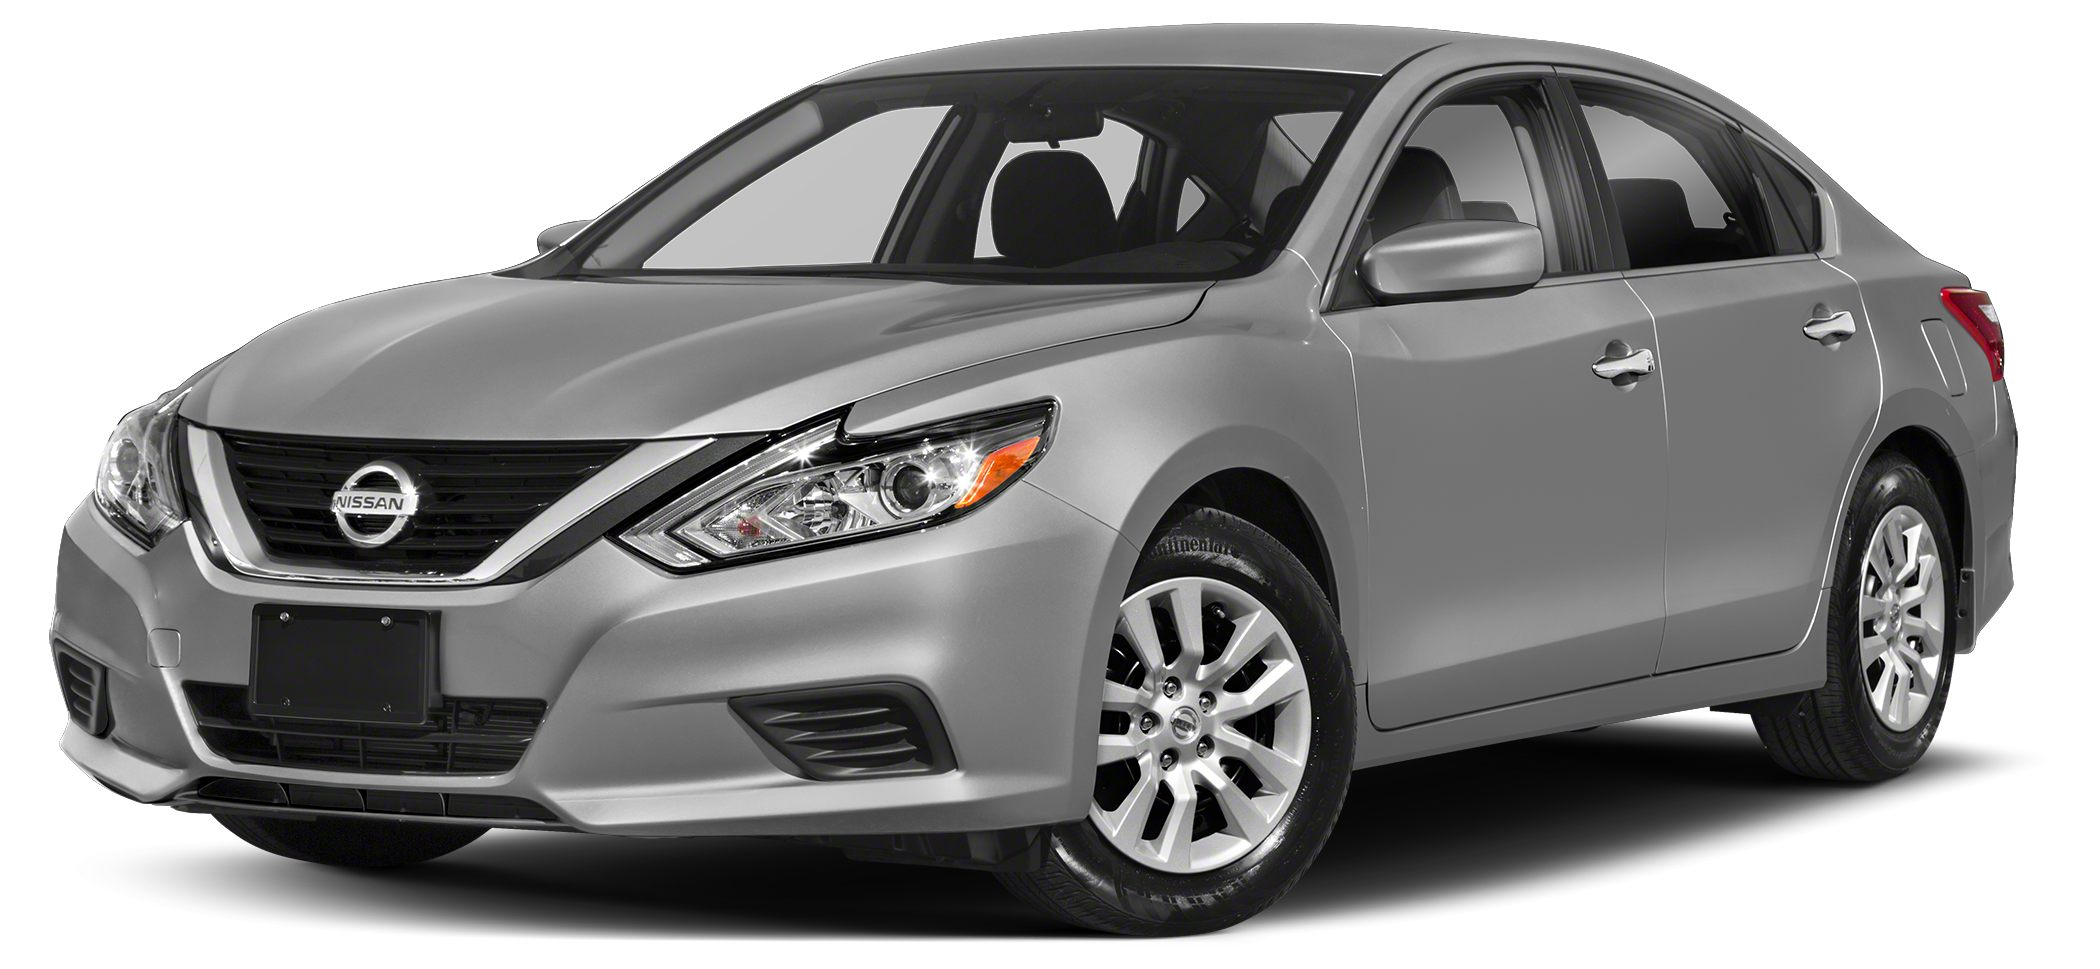 2018 Nissan Altima 25 SL The premium exterior design of the 2018 Nissan Altima from the powerful